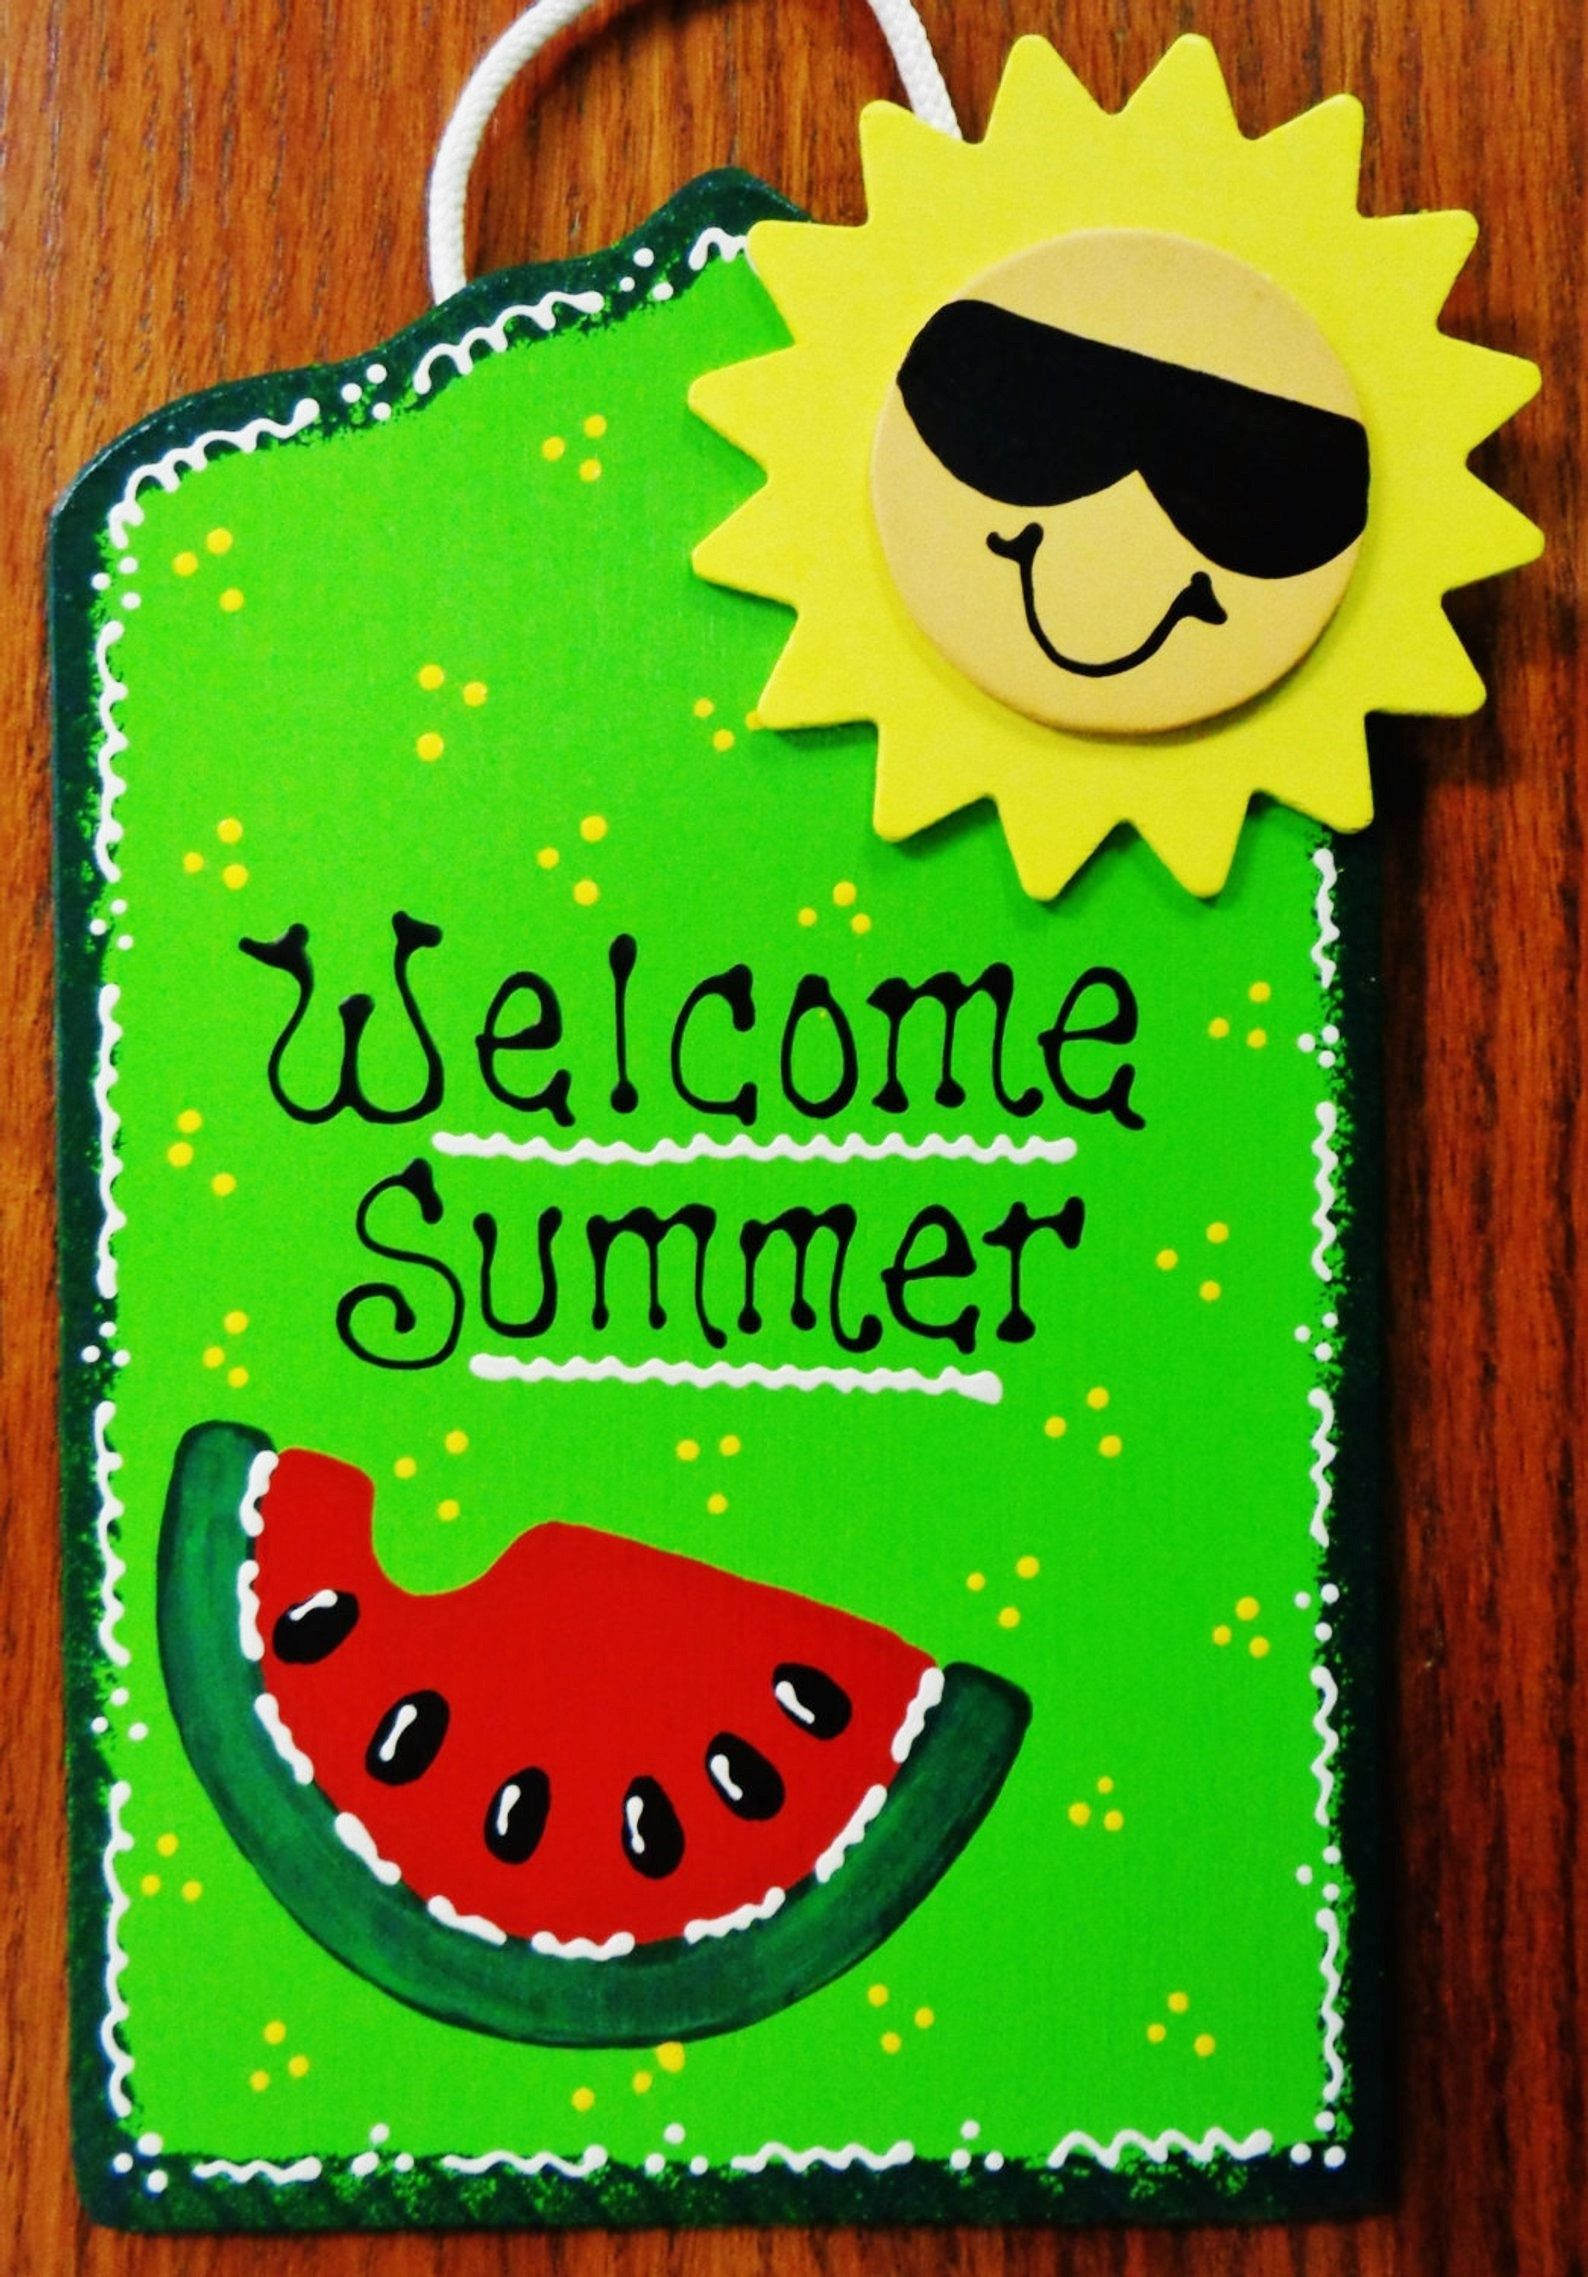 WELCOME SUMMER Watermelon & Sun SIGN Tiki Bar Pool Deck.